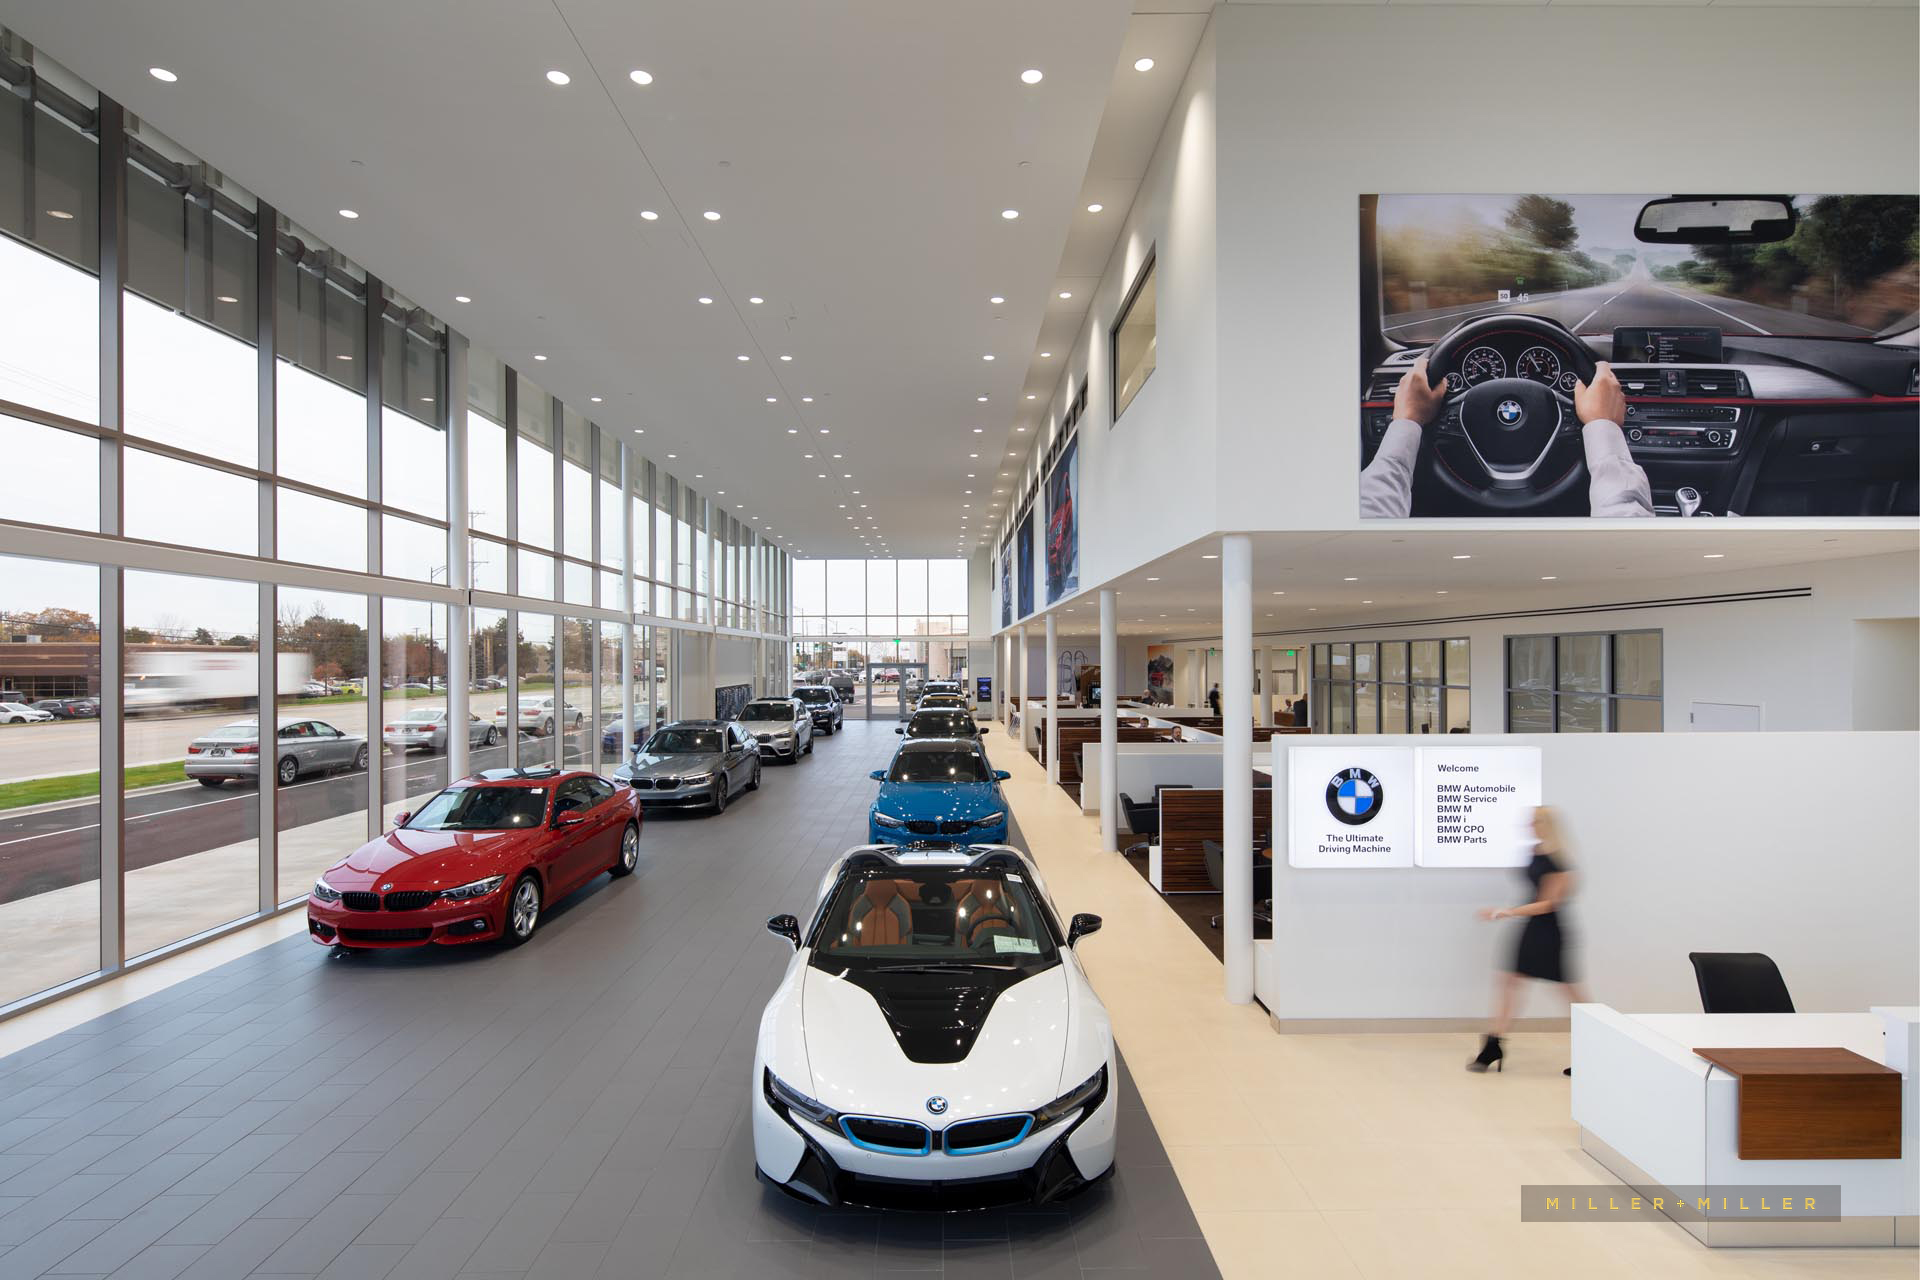 car showroom architectural interior photos blurred people moving